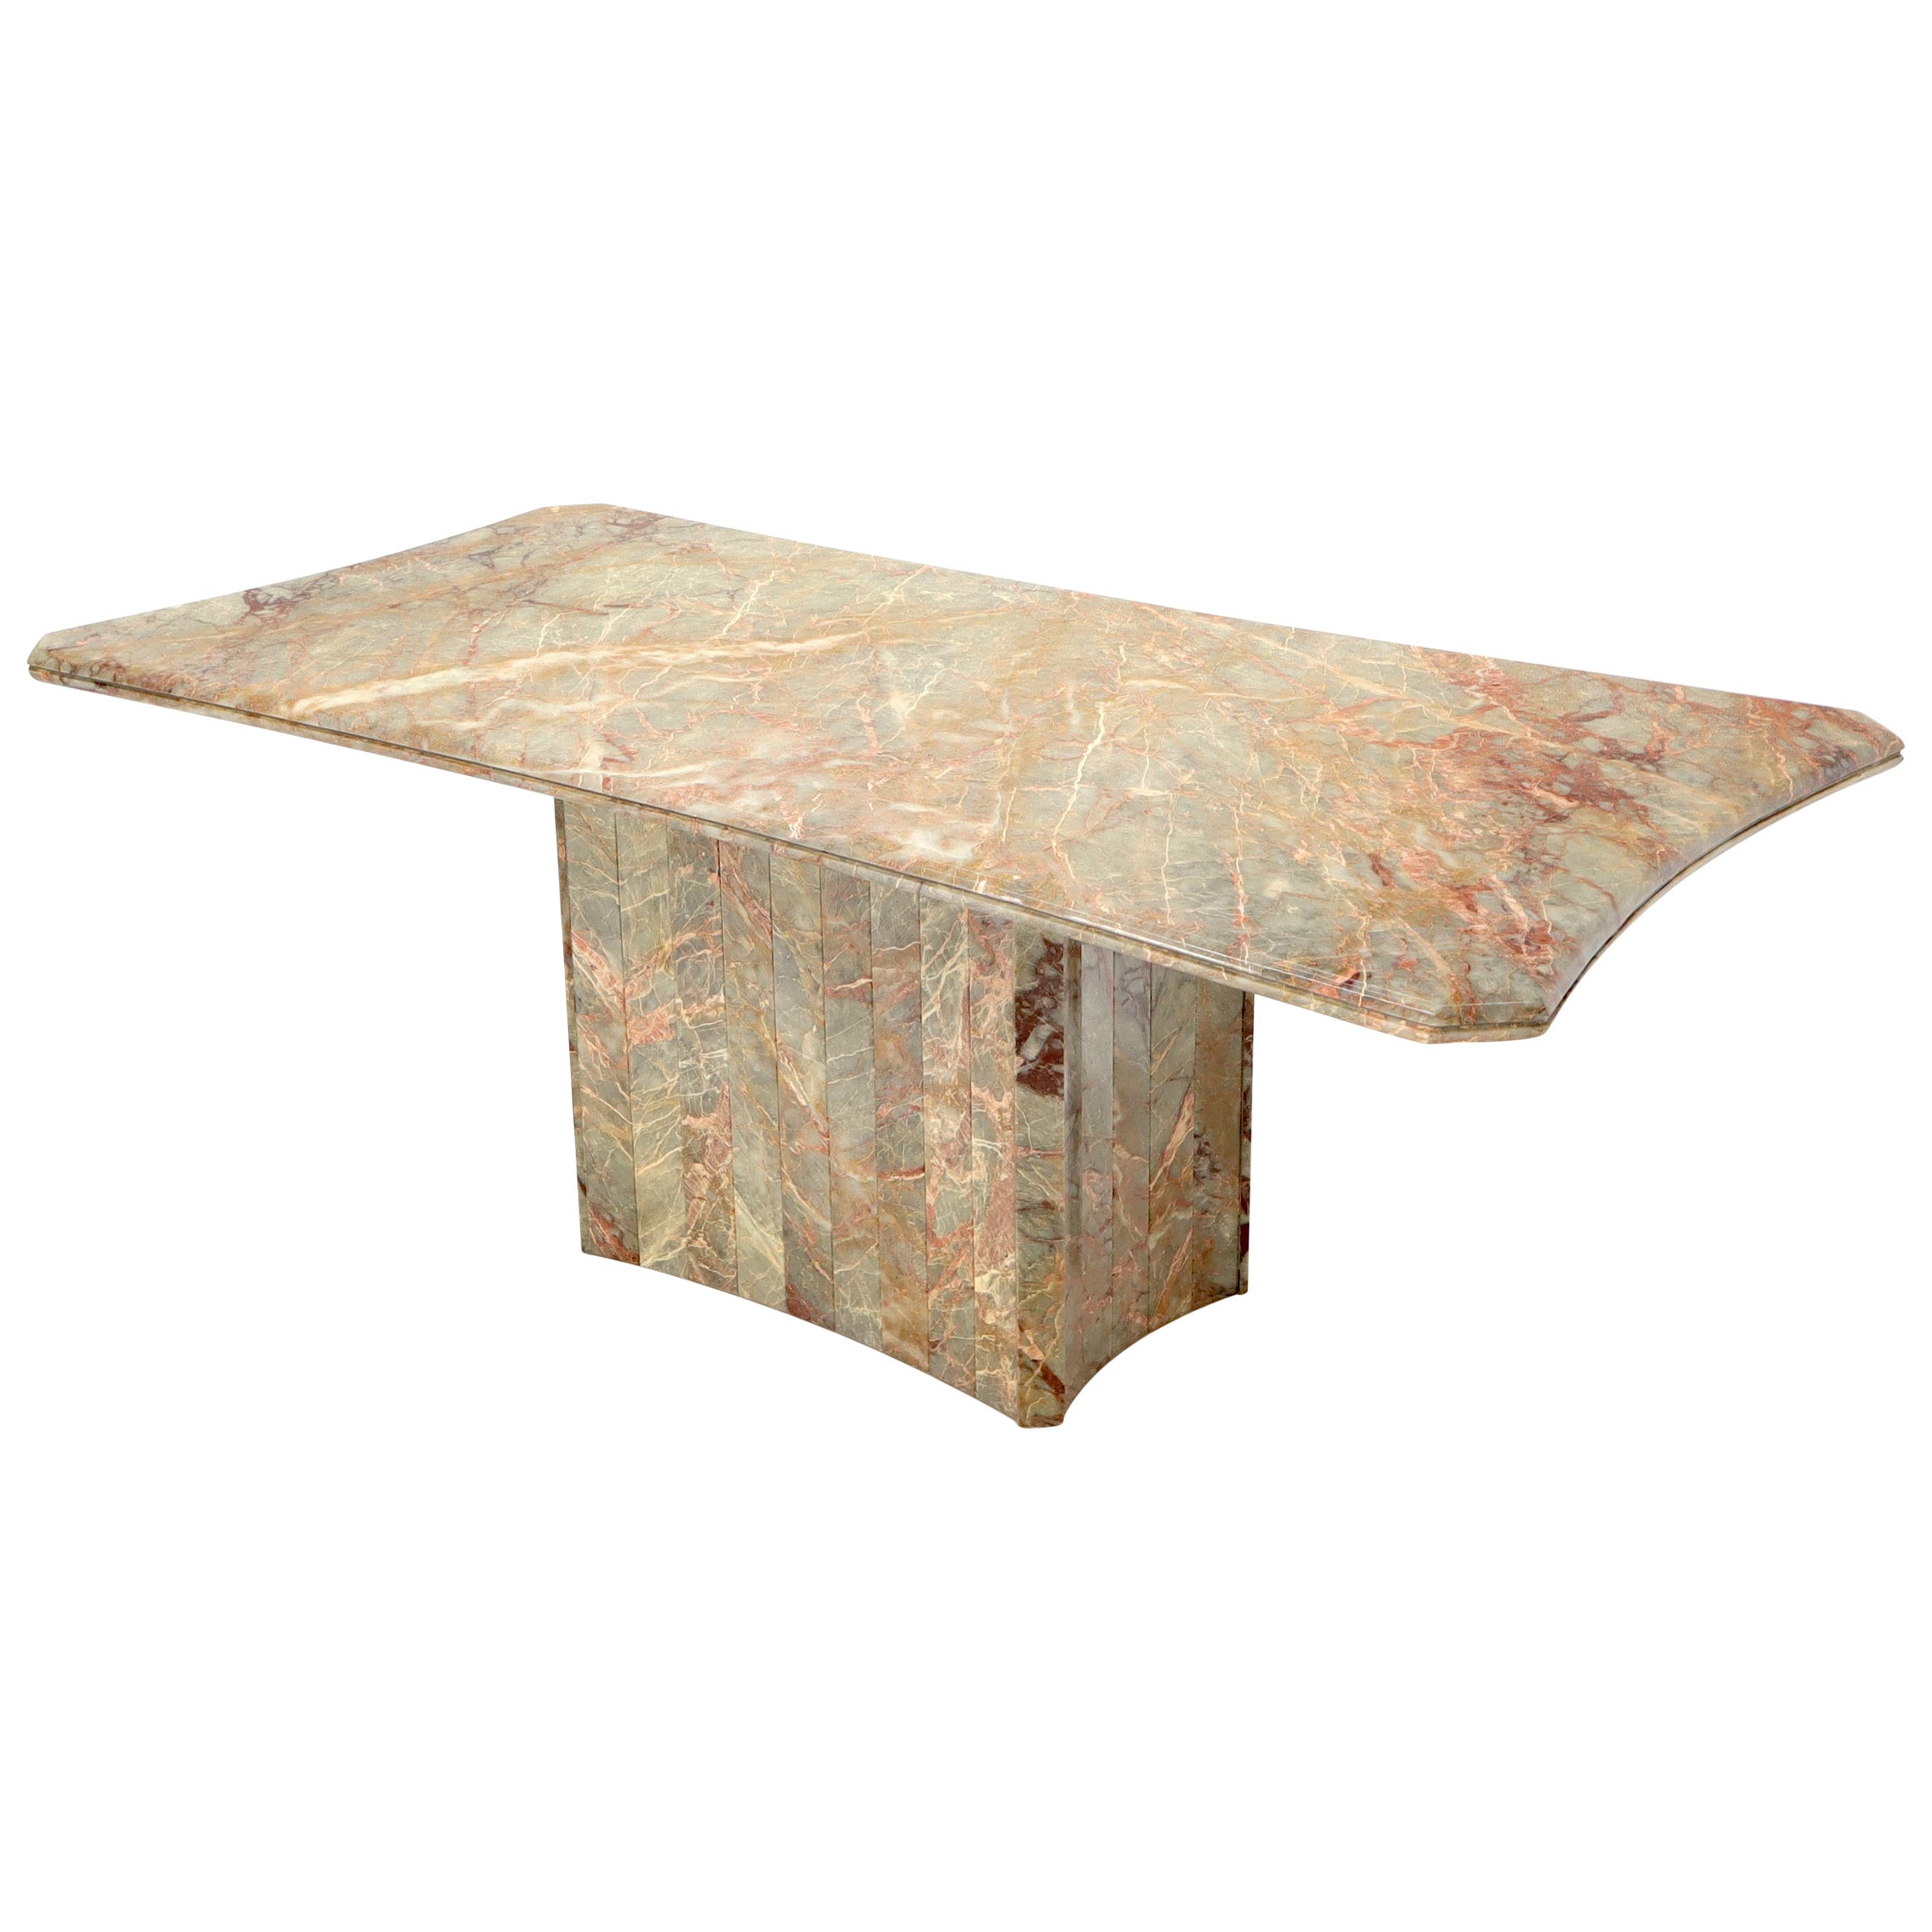 Concave Side Rectangular Pedestal Base Marble Dining Conference Table